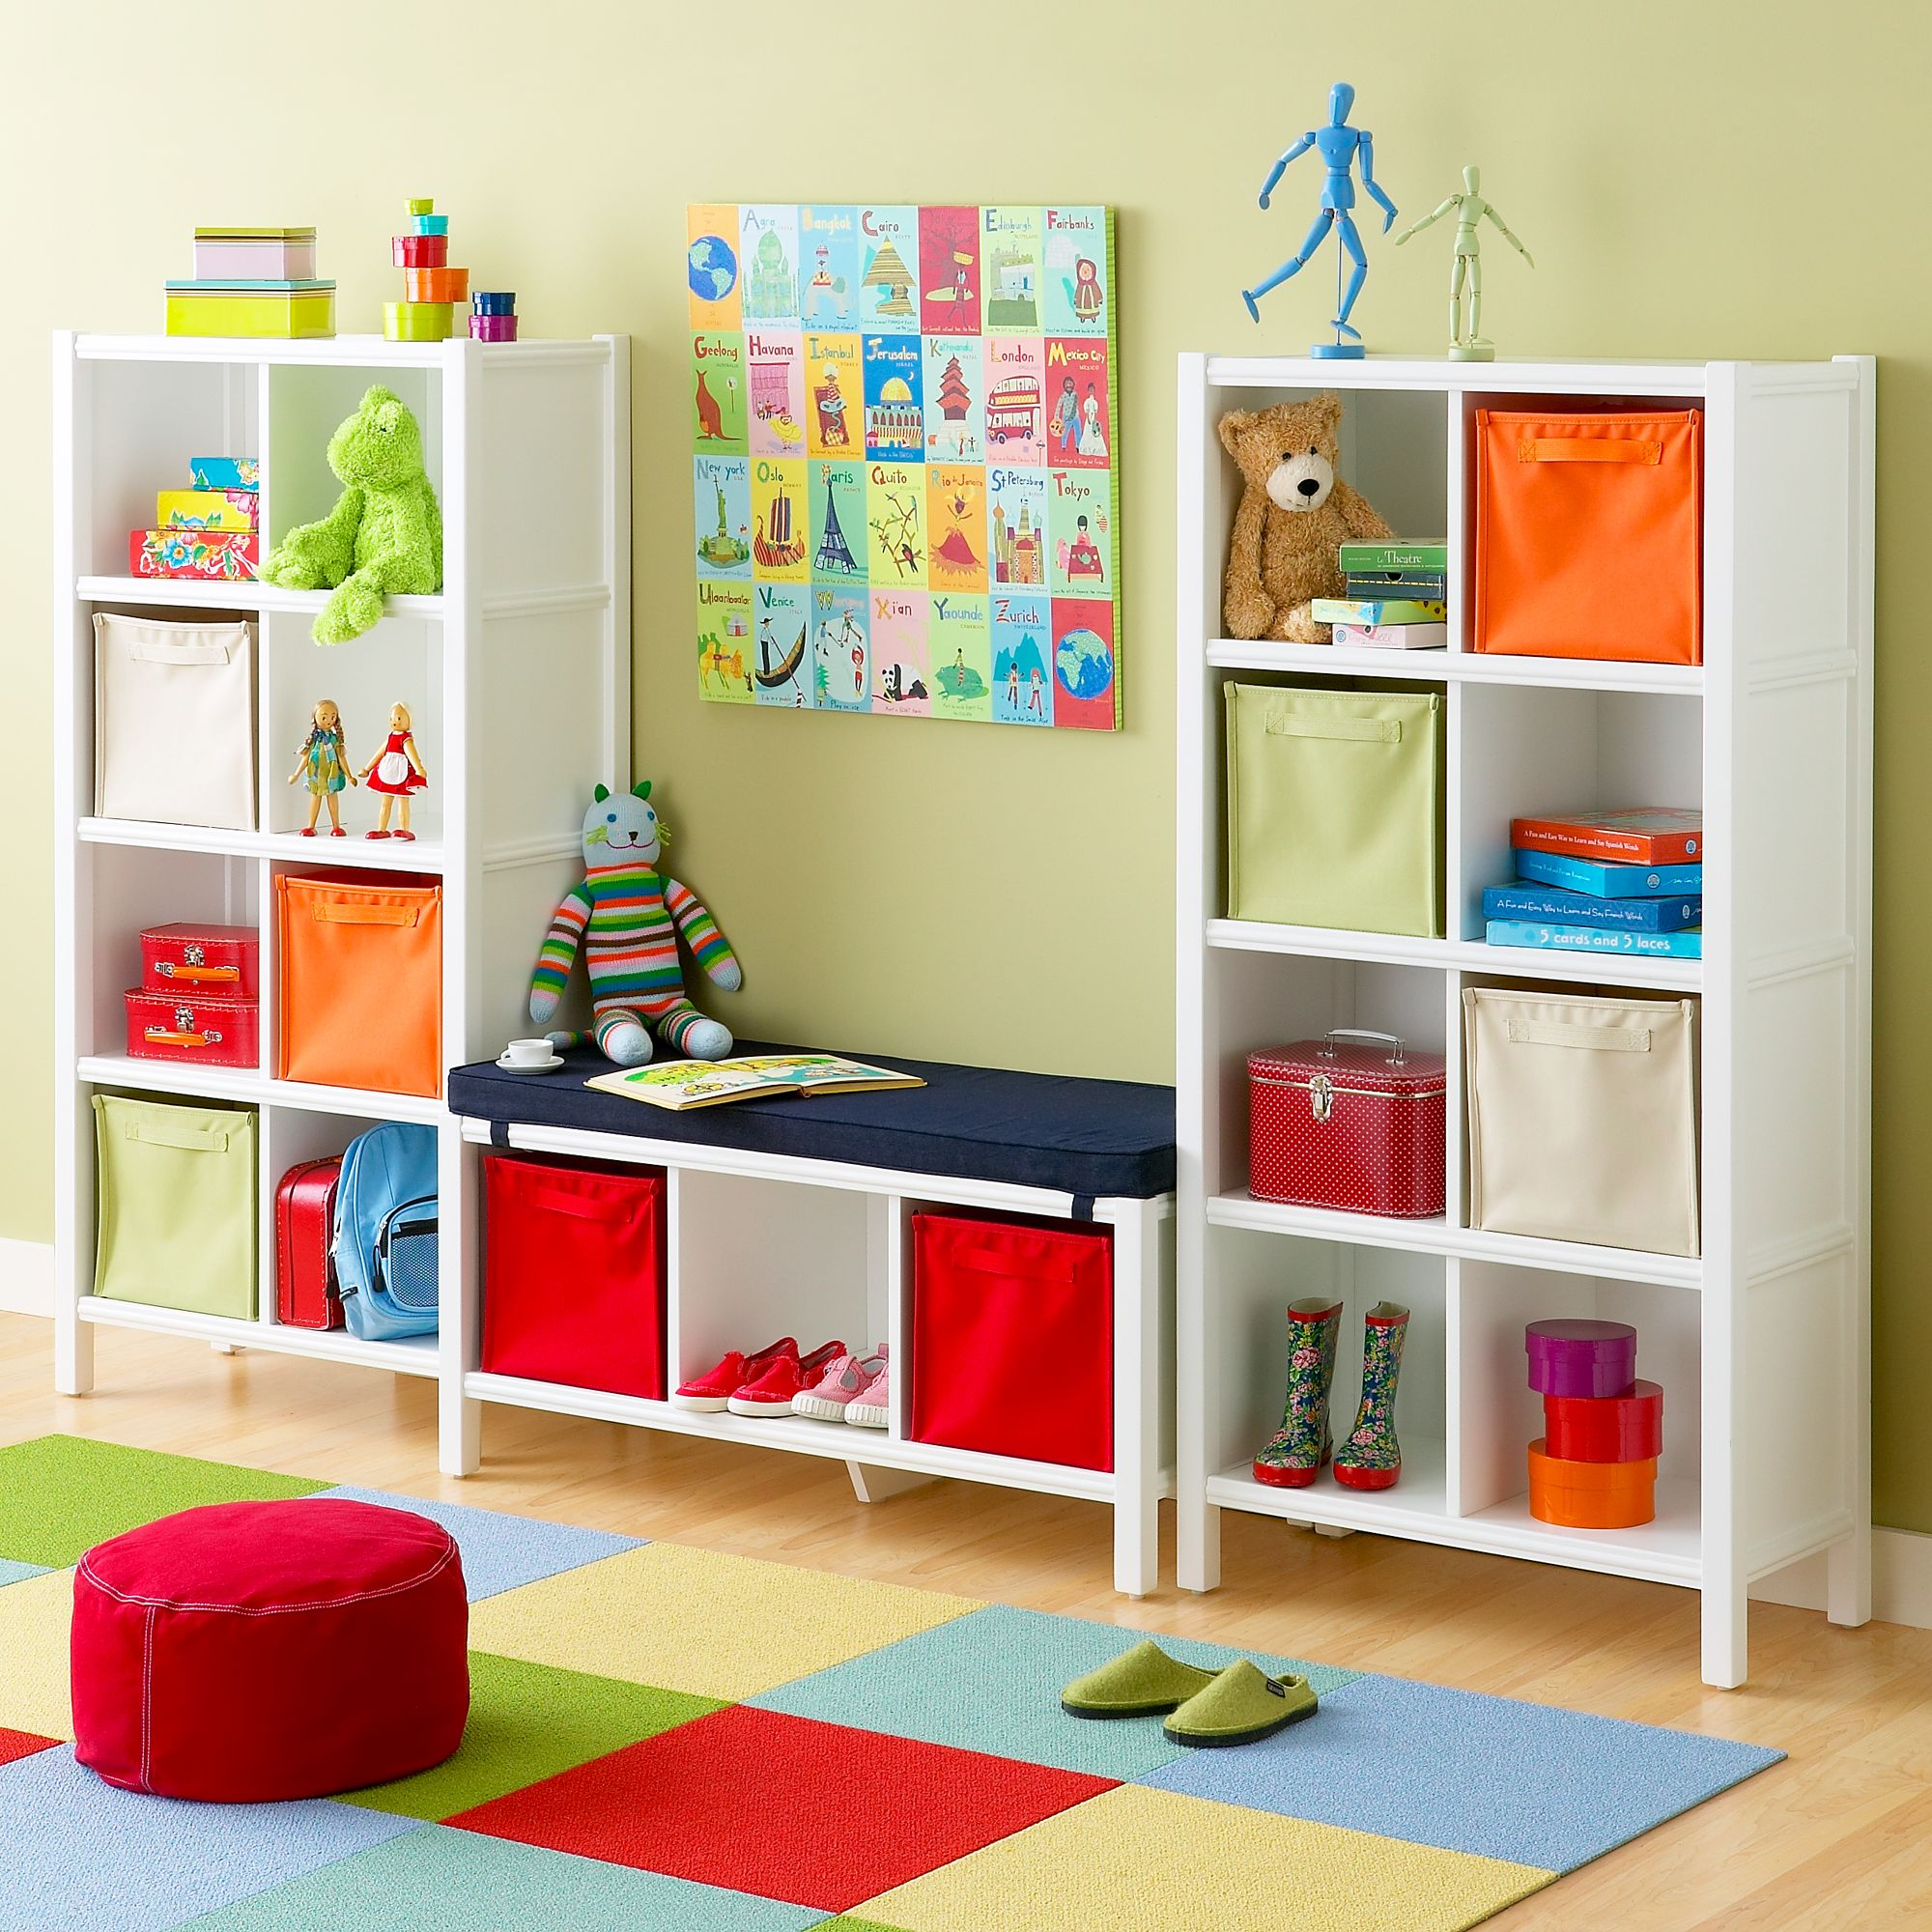 Cupboard In Kids Bedroom Ideas (View 8 of 10)